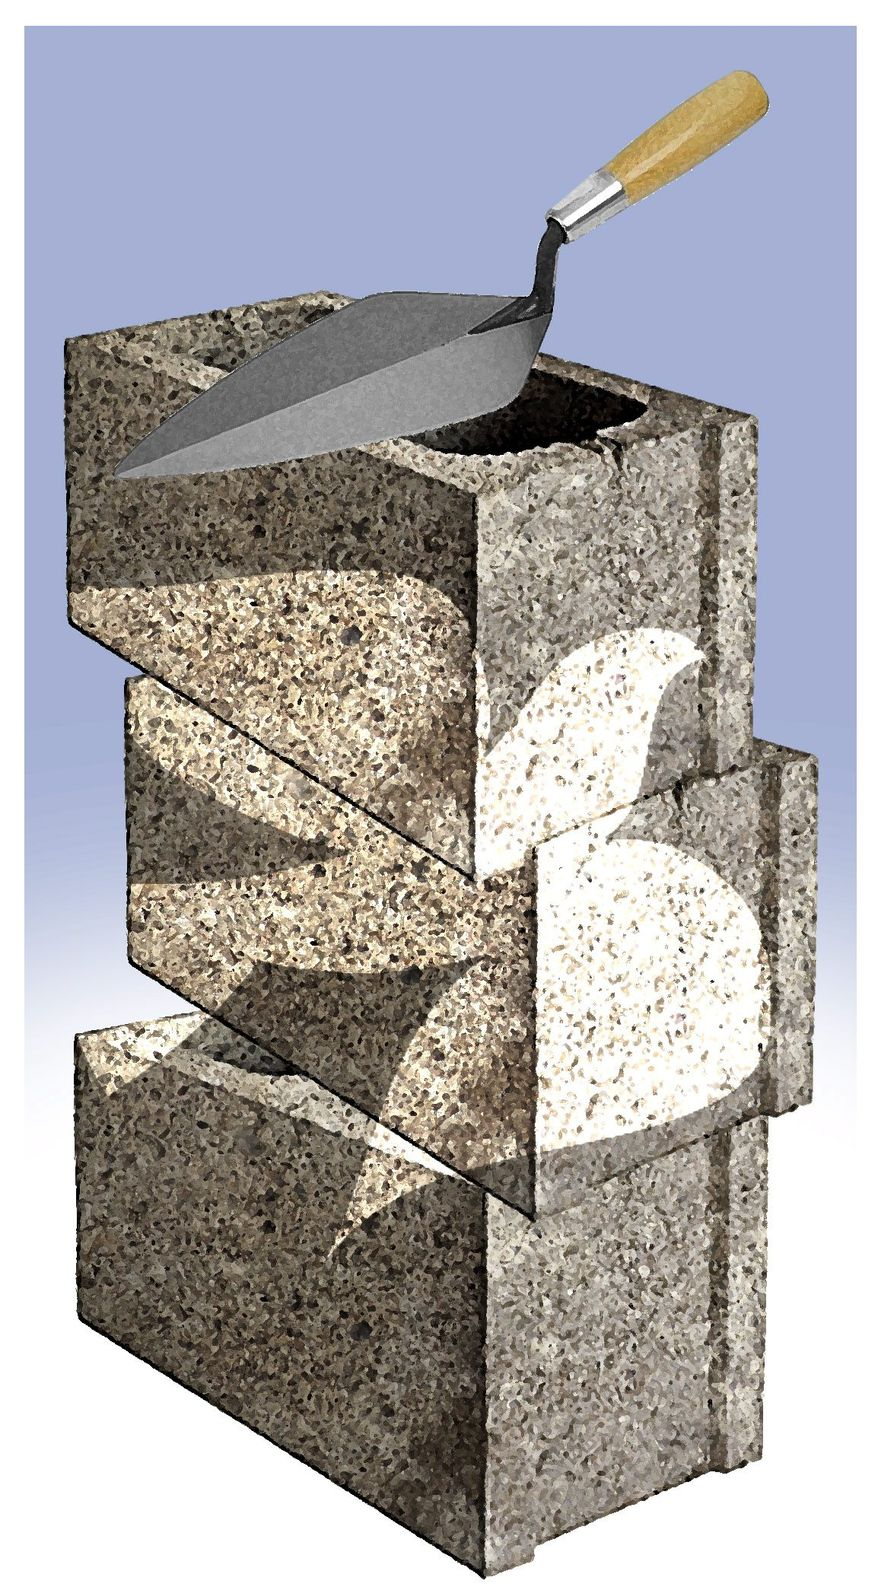 Illustration on building peace between Israel and the Palestinians by Alexander Hunter/The Washington Times